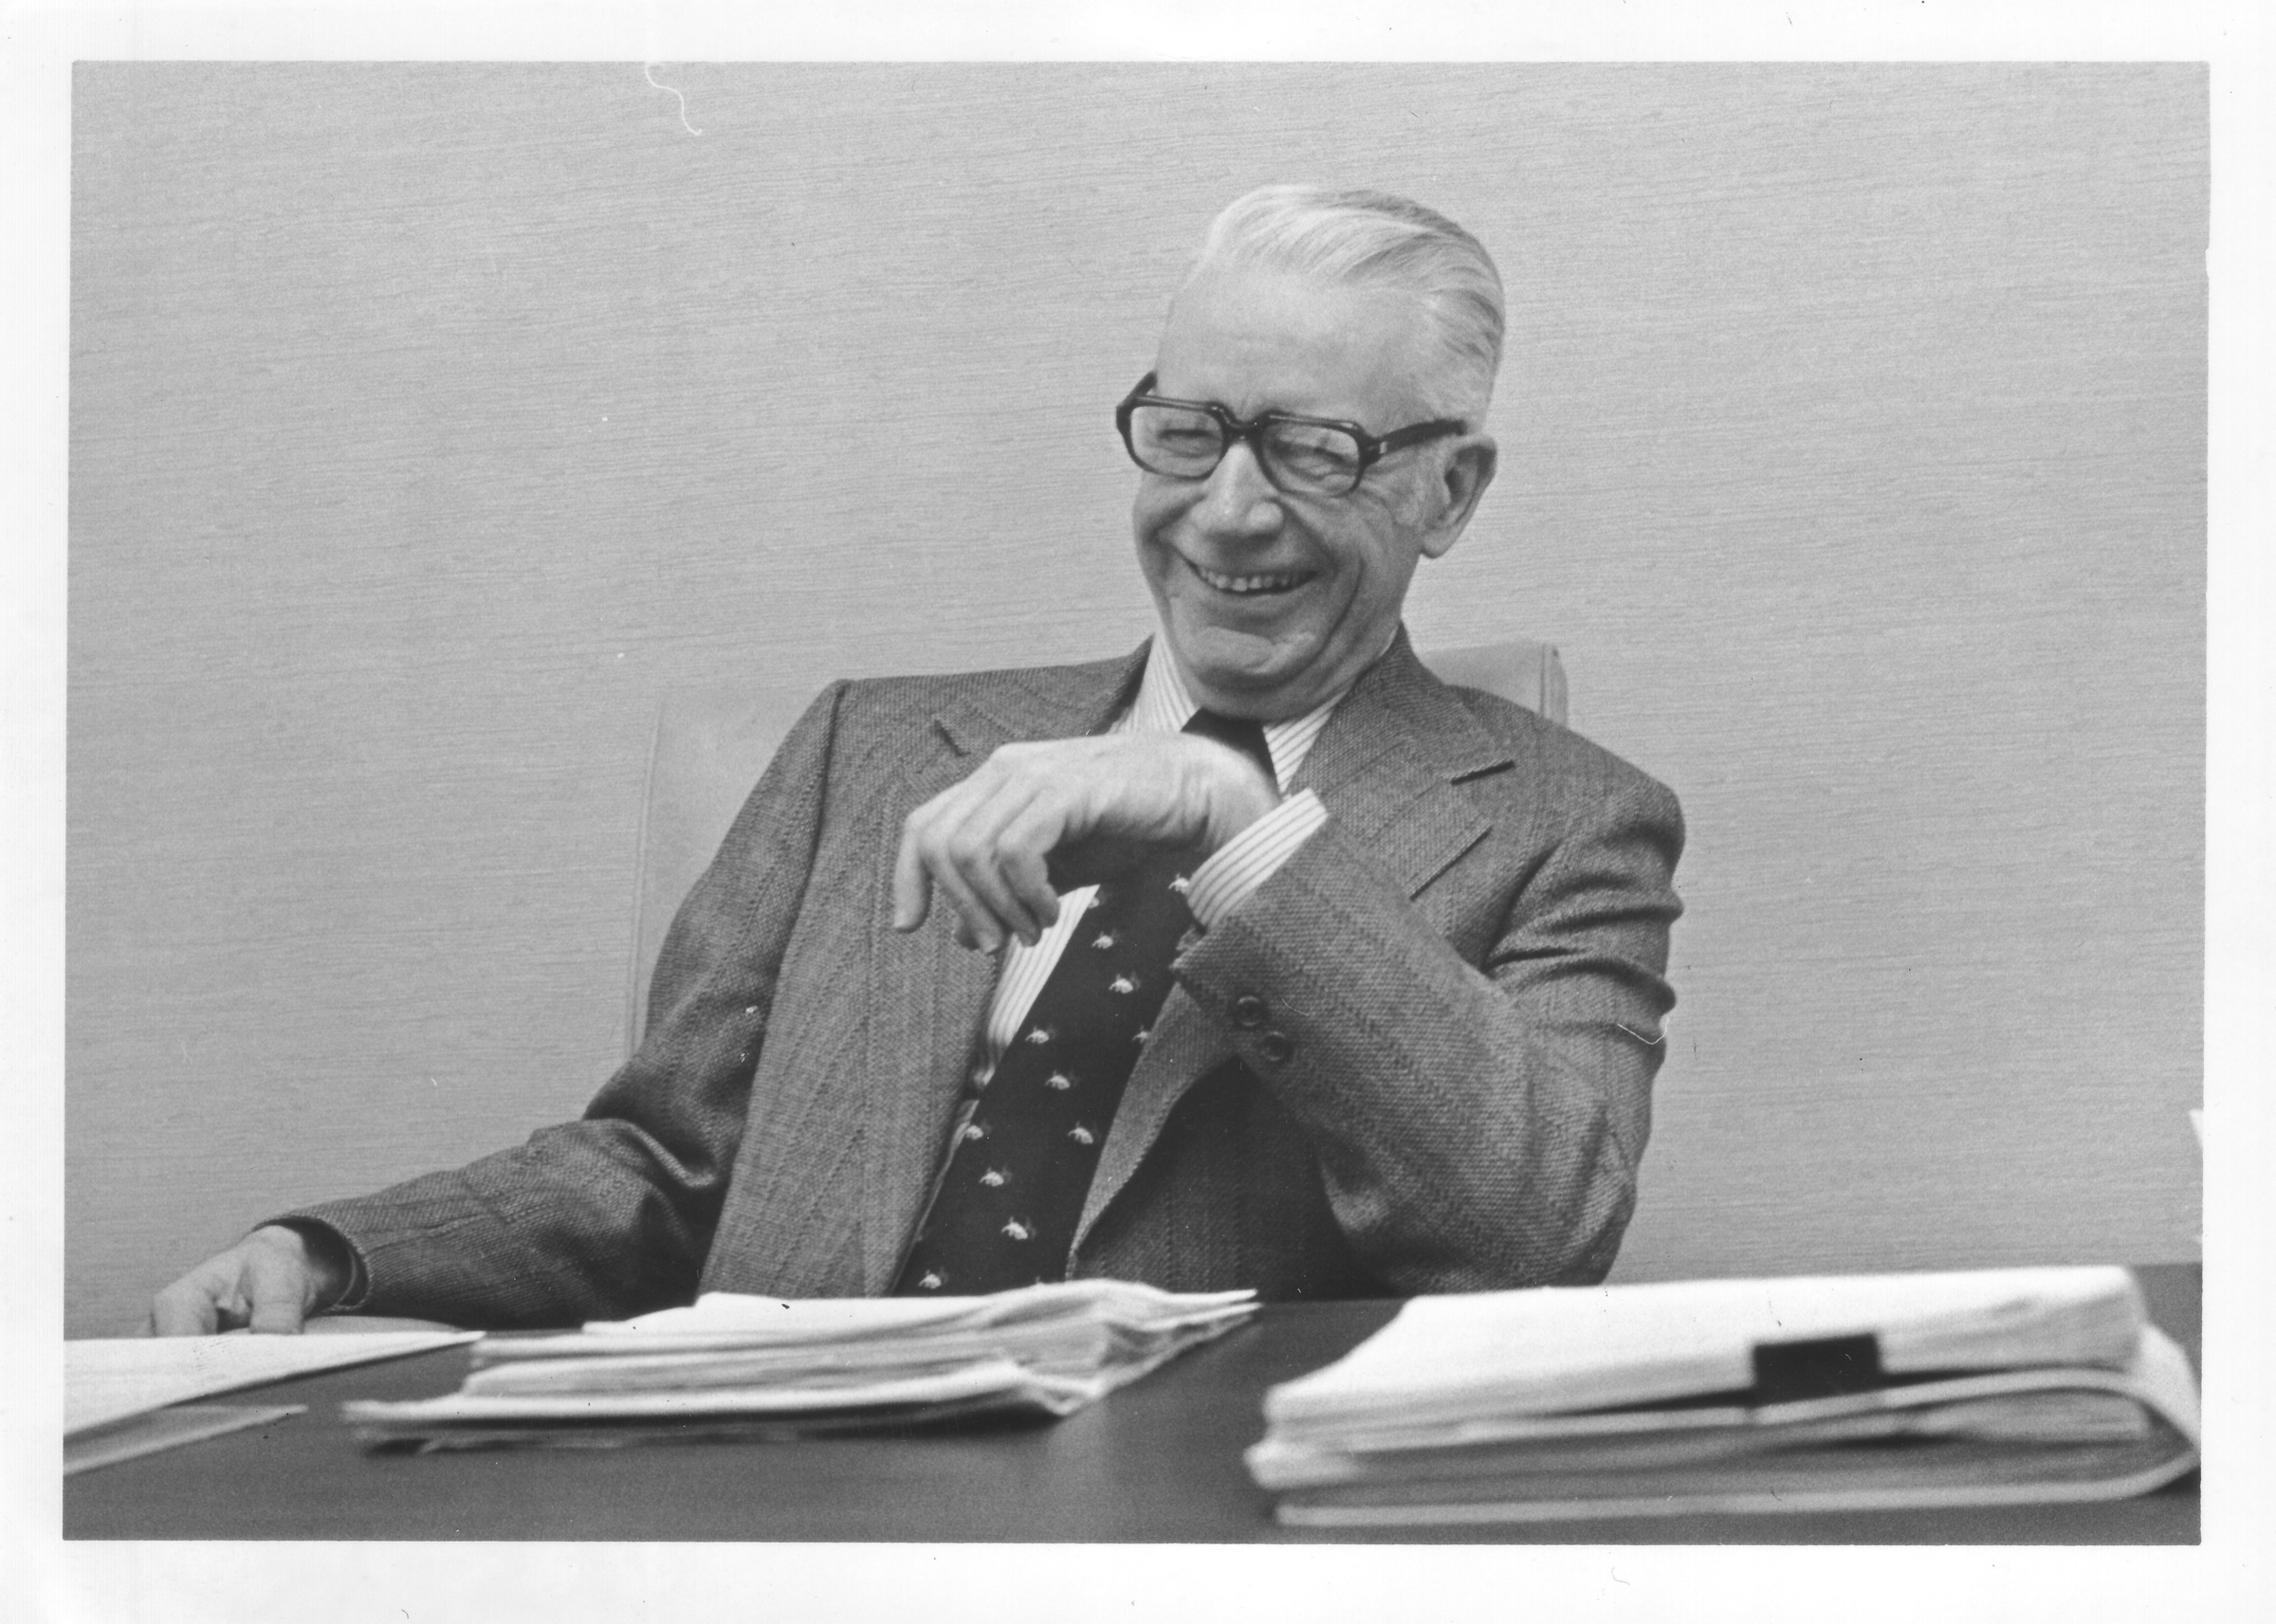 Dr. Robert C. Krug at his desk